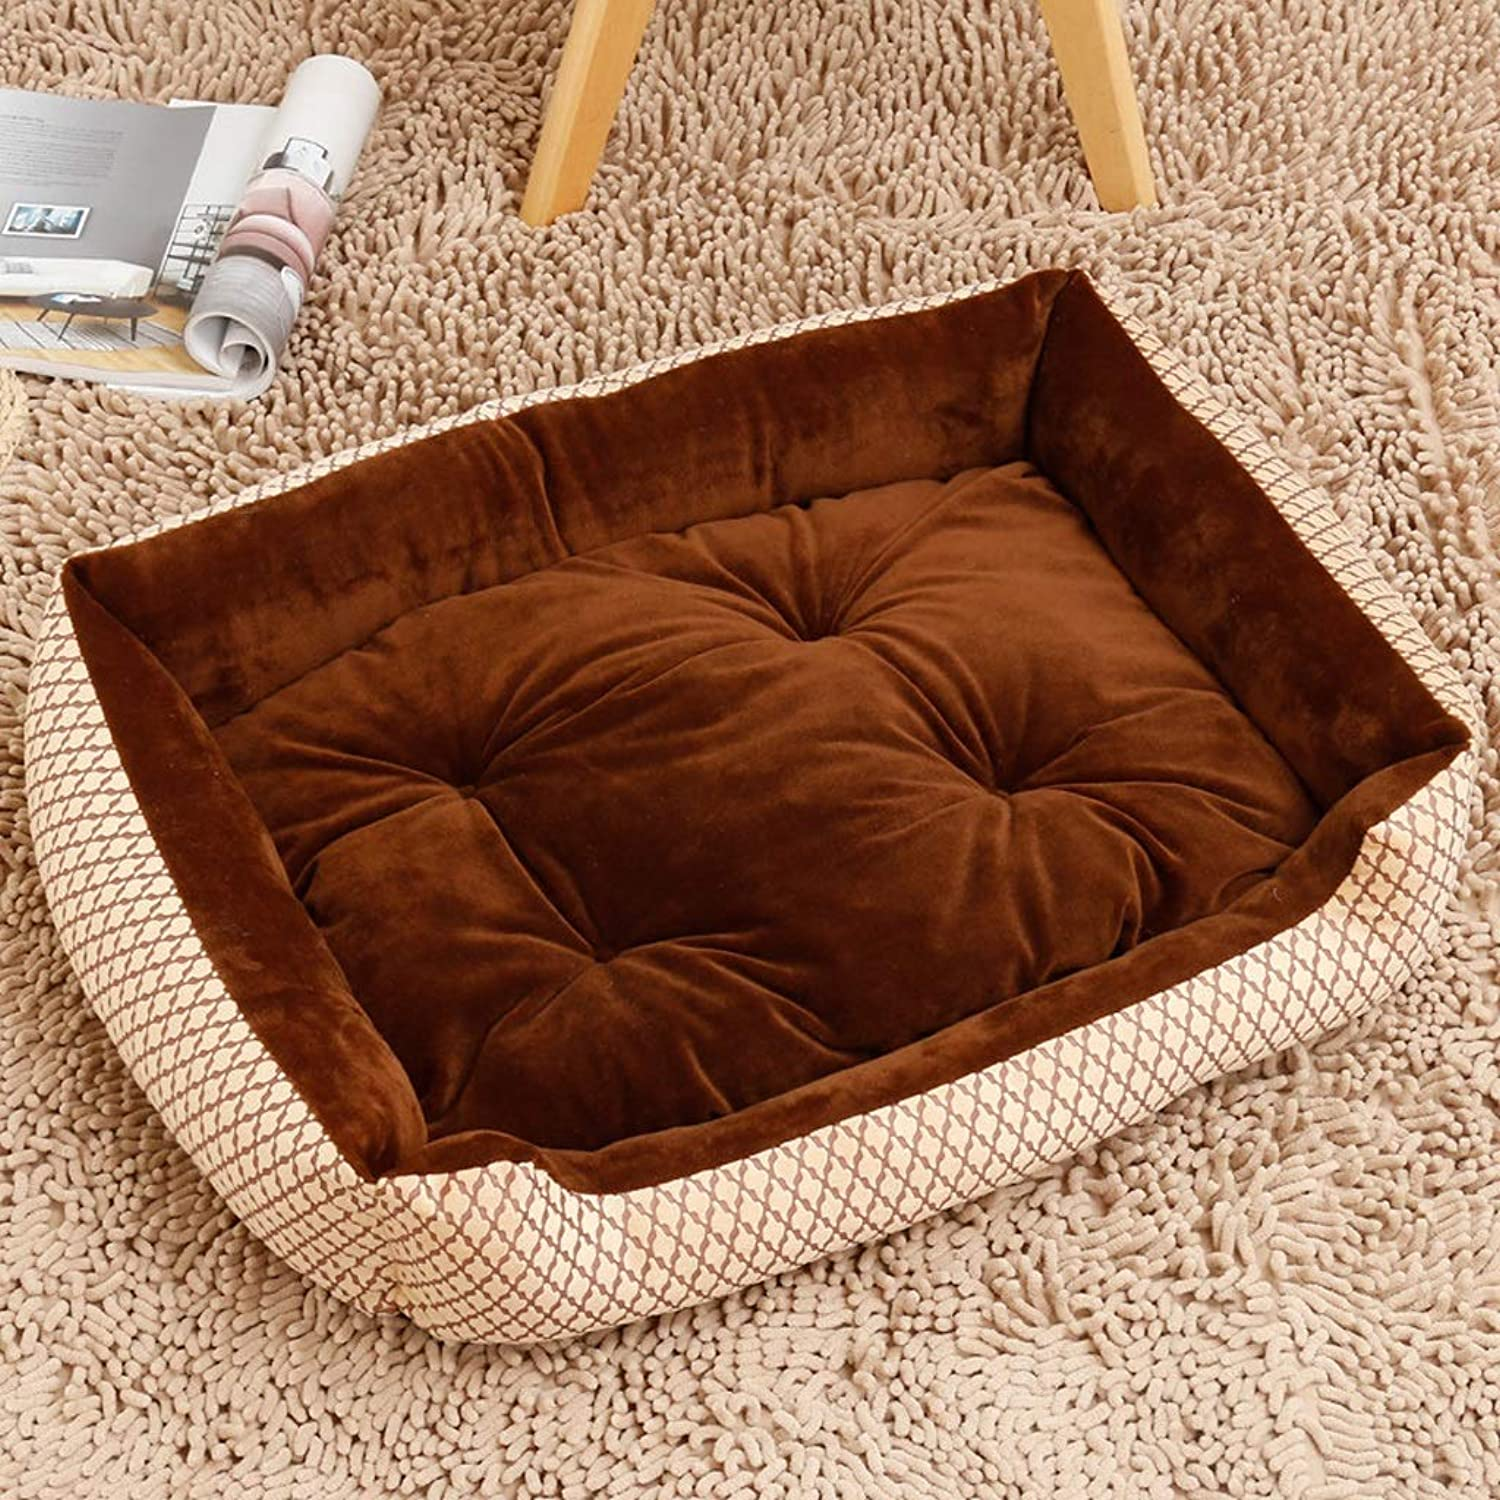 Kennel GAOLILI Washed Teddy Bear Winter Warm Pet Cat golden Retriever Mattress Small Dog Large Dog Supplies (color   C, Size   60  45  15CM)